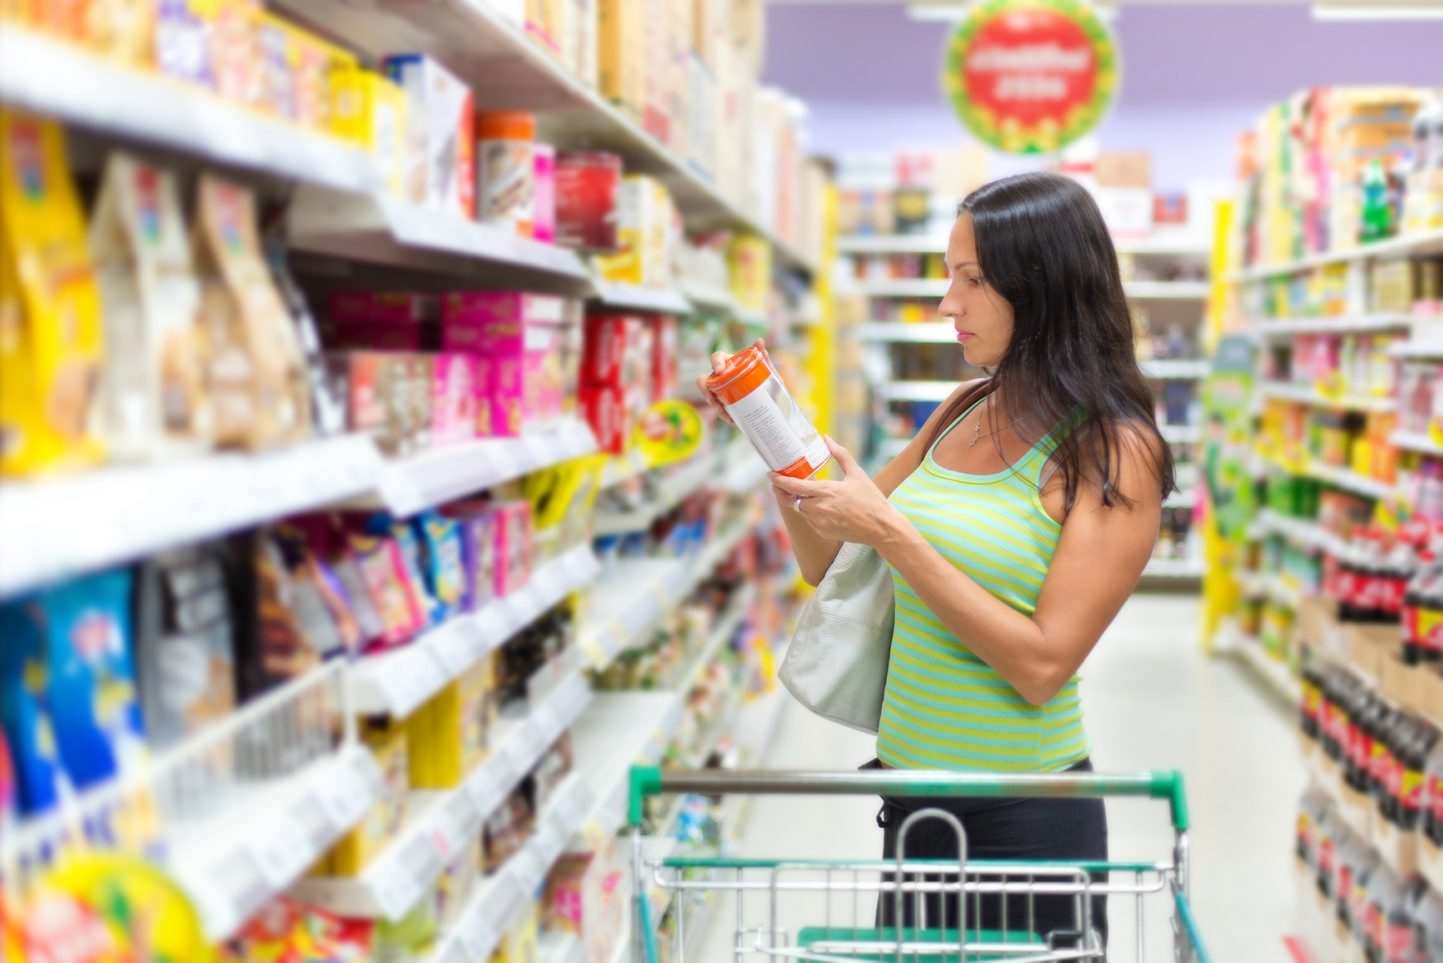 Consumers can add five to seven days to the expiration date on a food label without harming health, said policy expert Emily M. Broad Leib.